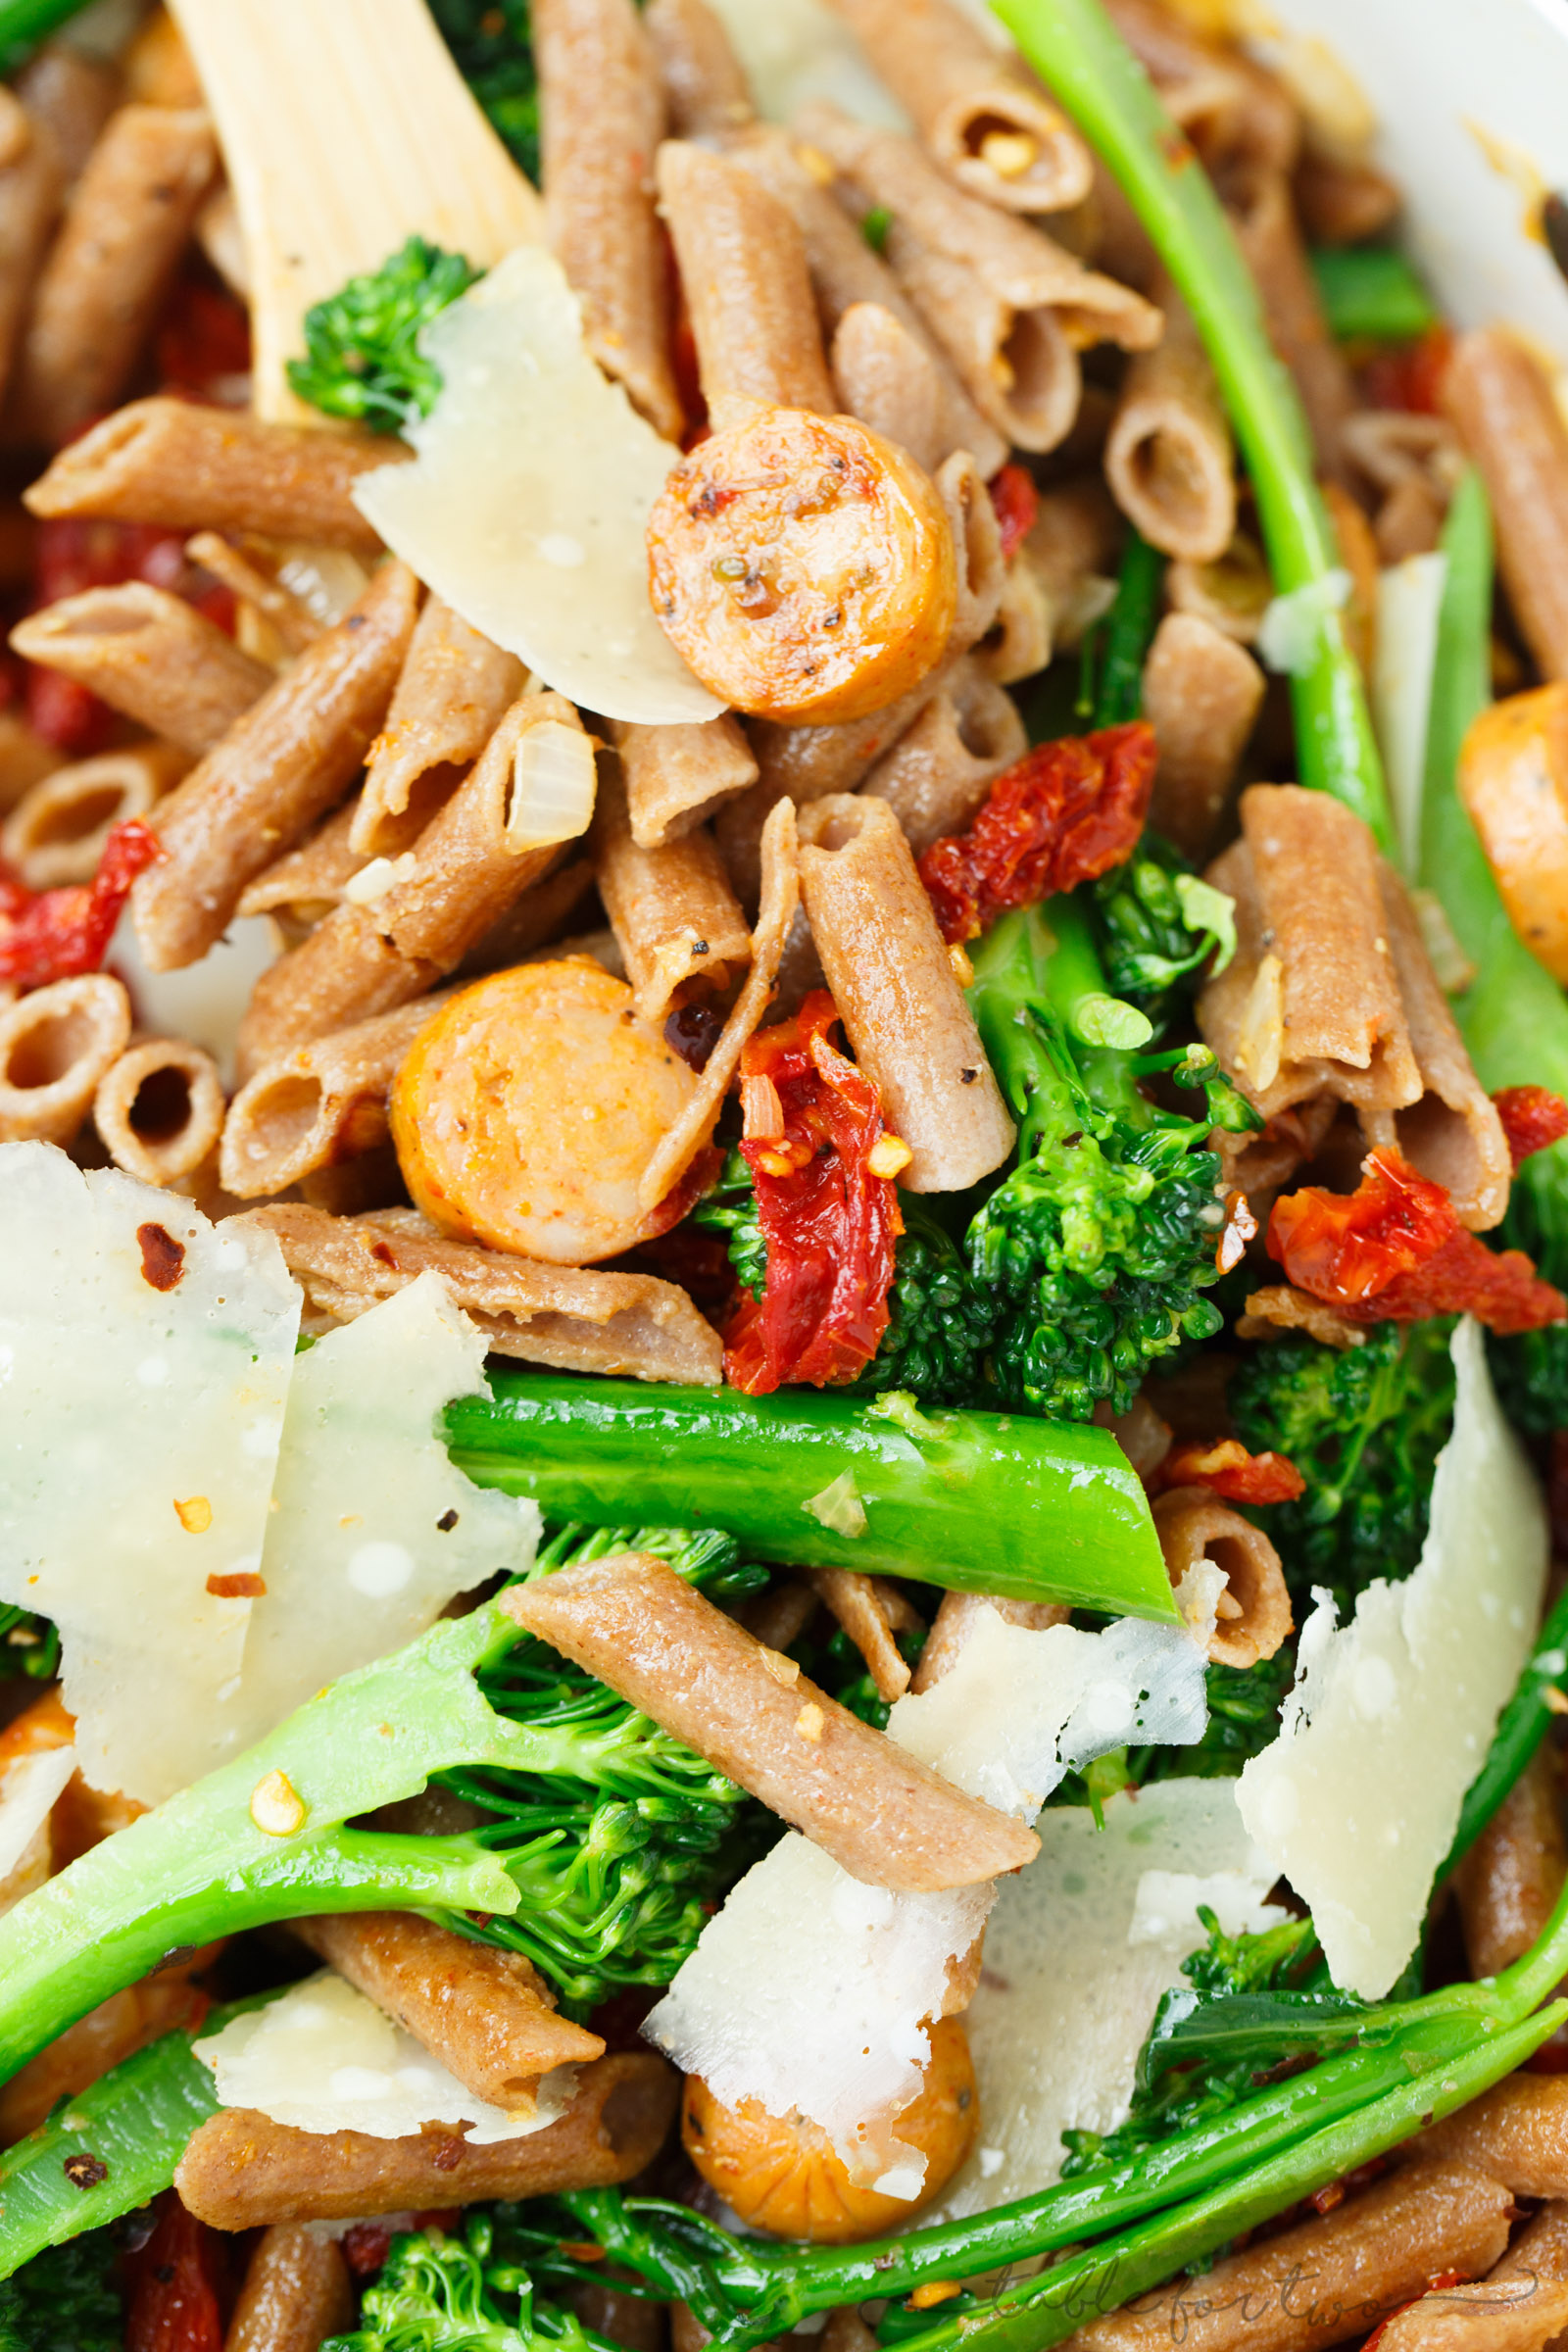 A light and hearty pasta dish that will sure to fill you up! This whole wheat penne with broccoli rabe, chicken sausage, and sundried tomatoes is a flavorful and unique pasta dish to put on your dinner table!